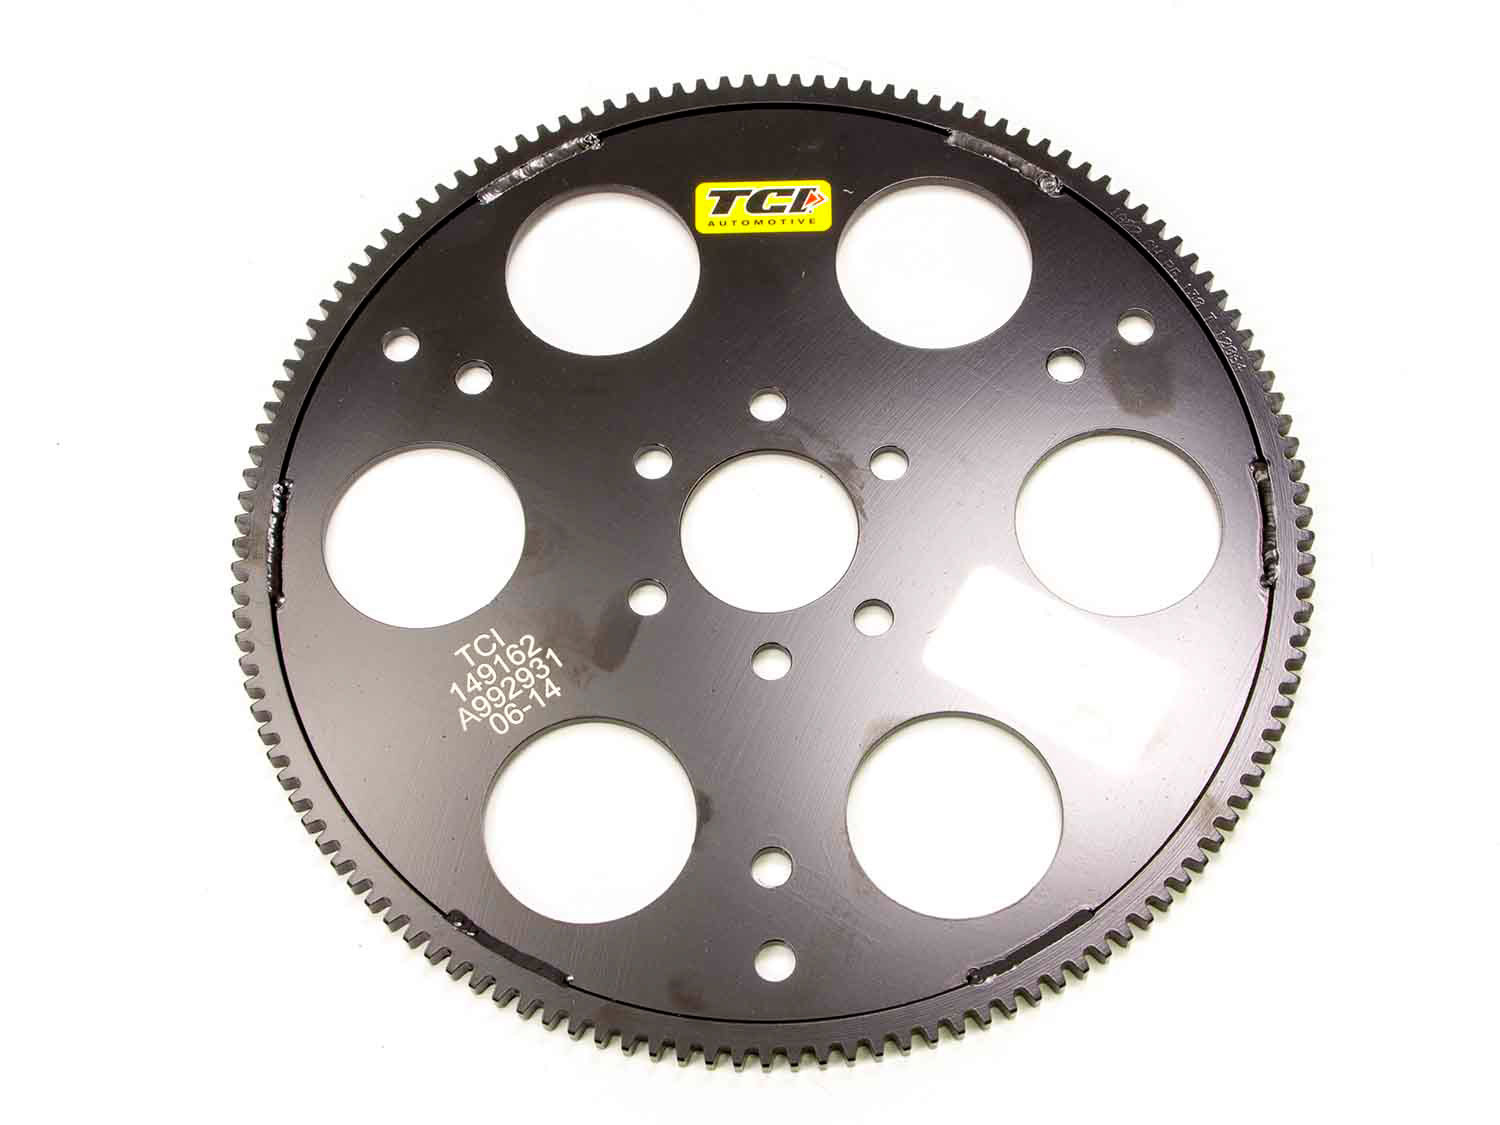 TCI 149162 Flexplate, SFI 29.1, Steel, TH350 / 400 / Powerglide, Internal Balance, 6-Bolt Crank, Mopar V8, Each